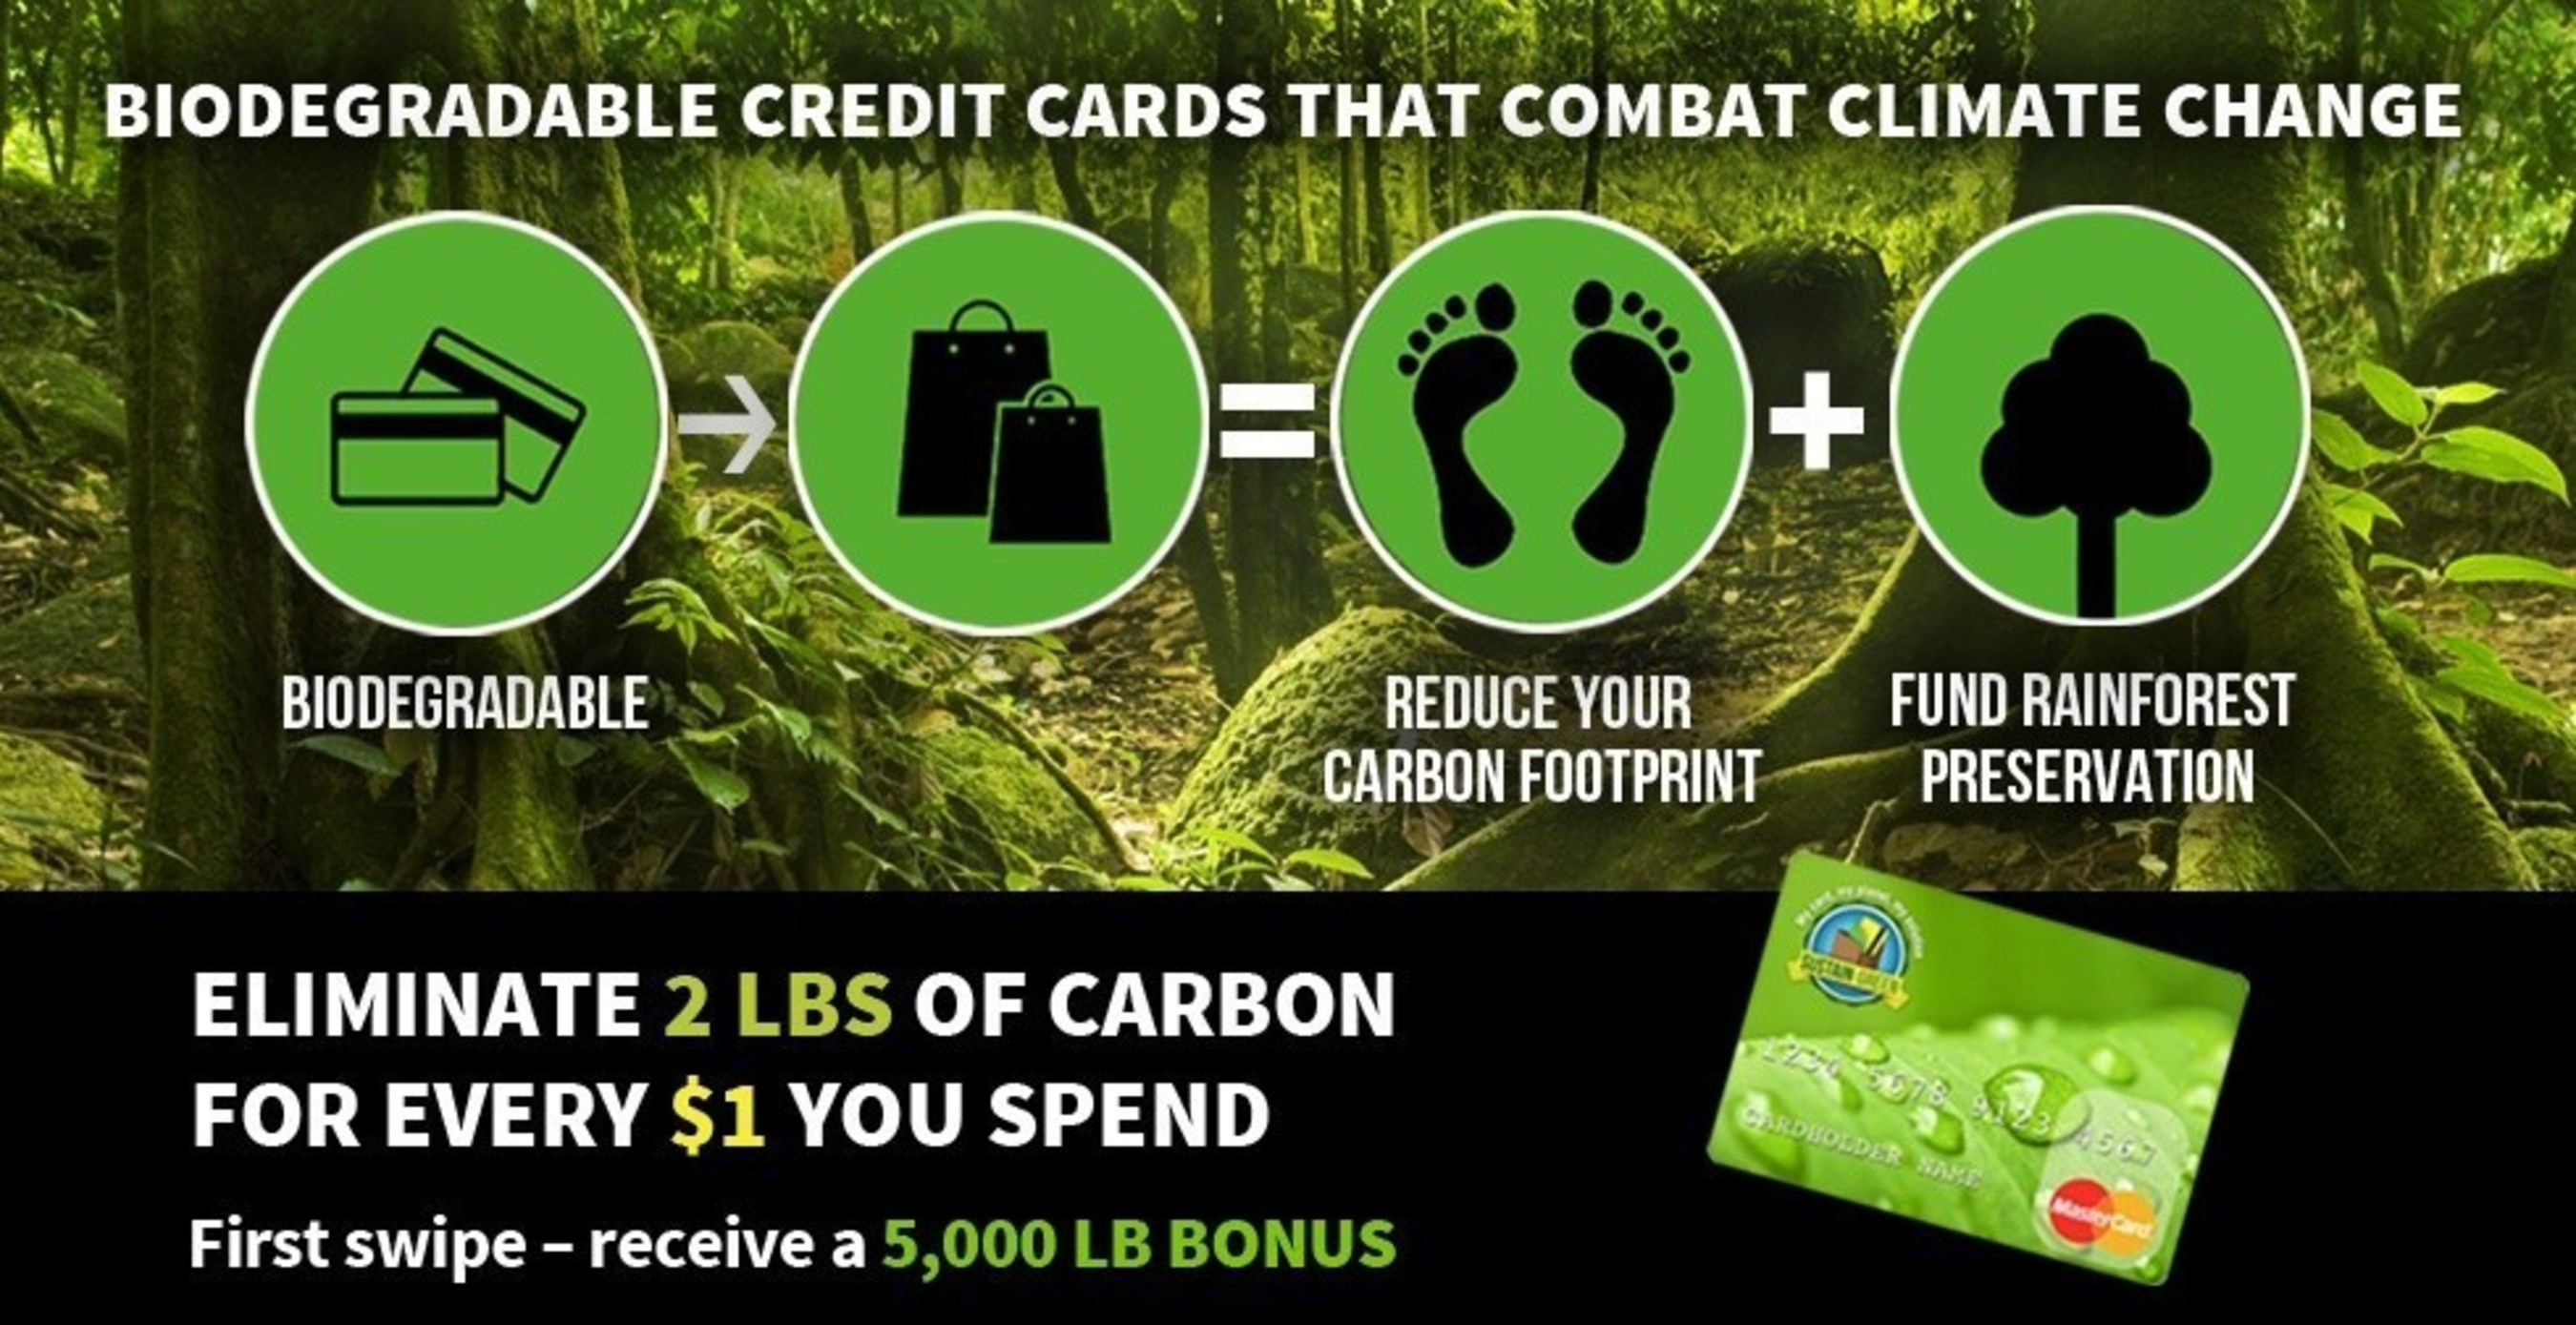 New biodegradable Sustain:Green MasterCard rewards cardholders with carbon offsets on their everyday purchases ...